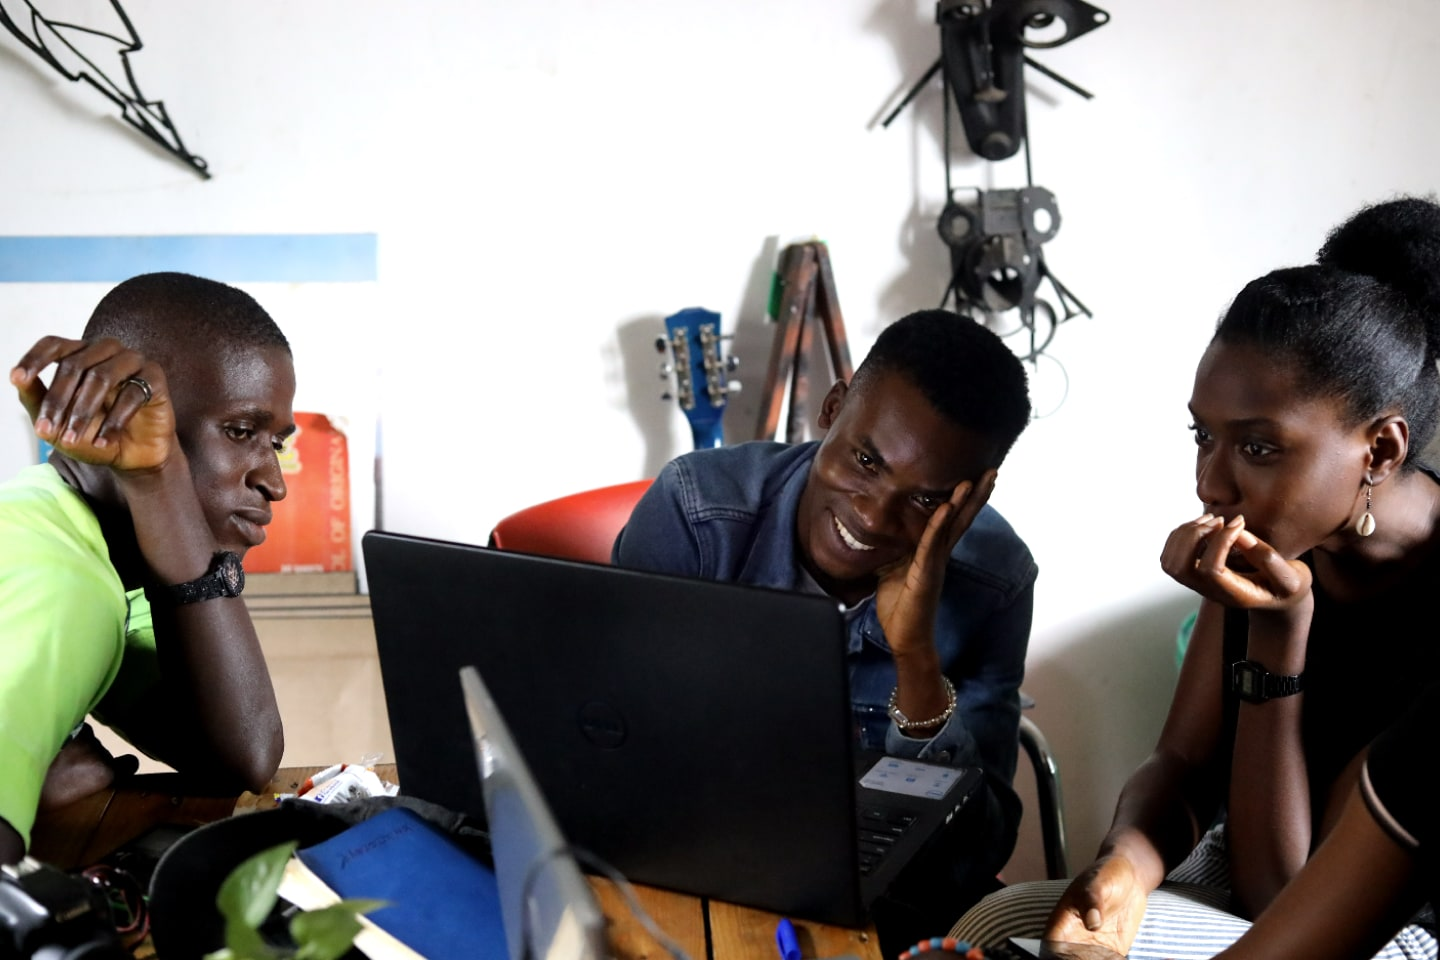 Three people look at a computer screen.